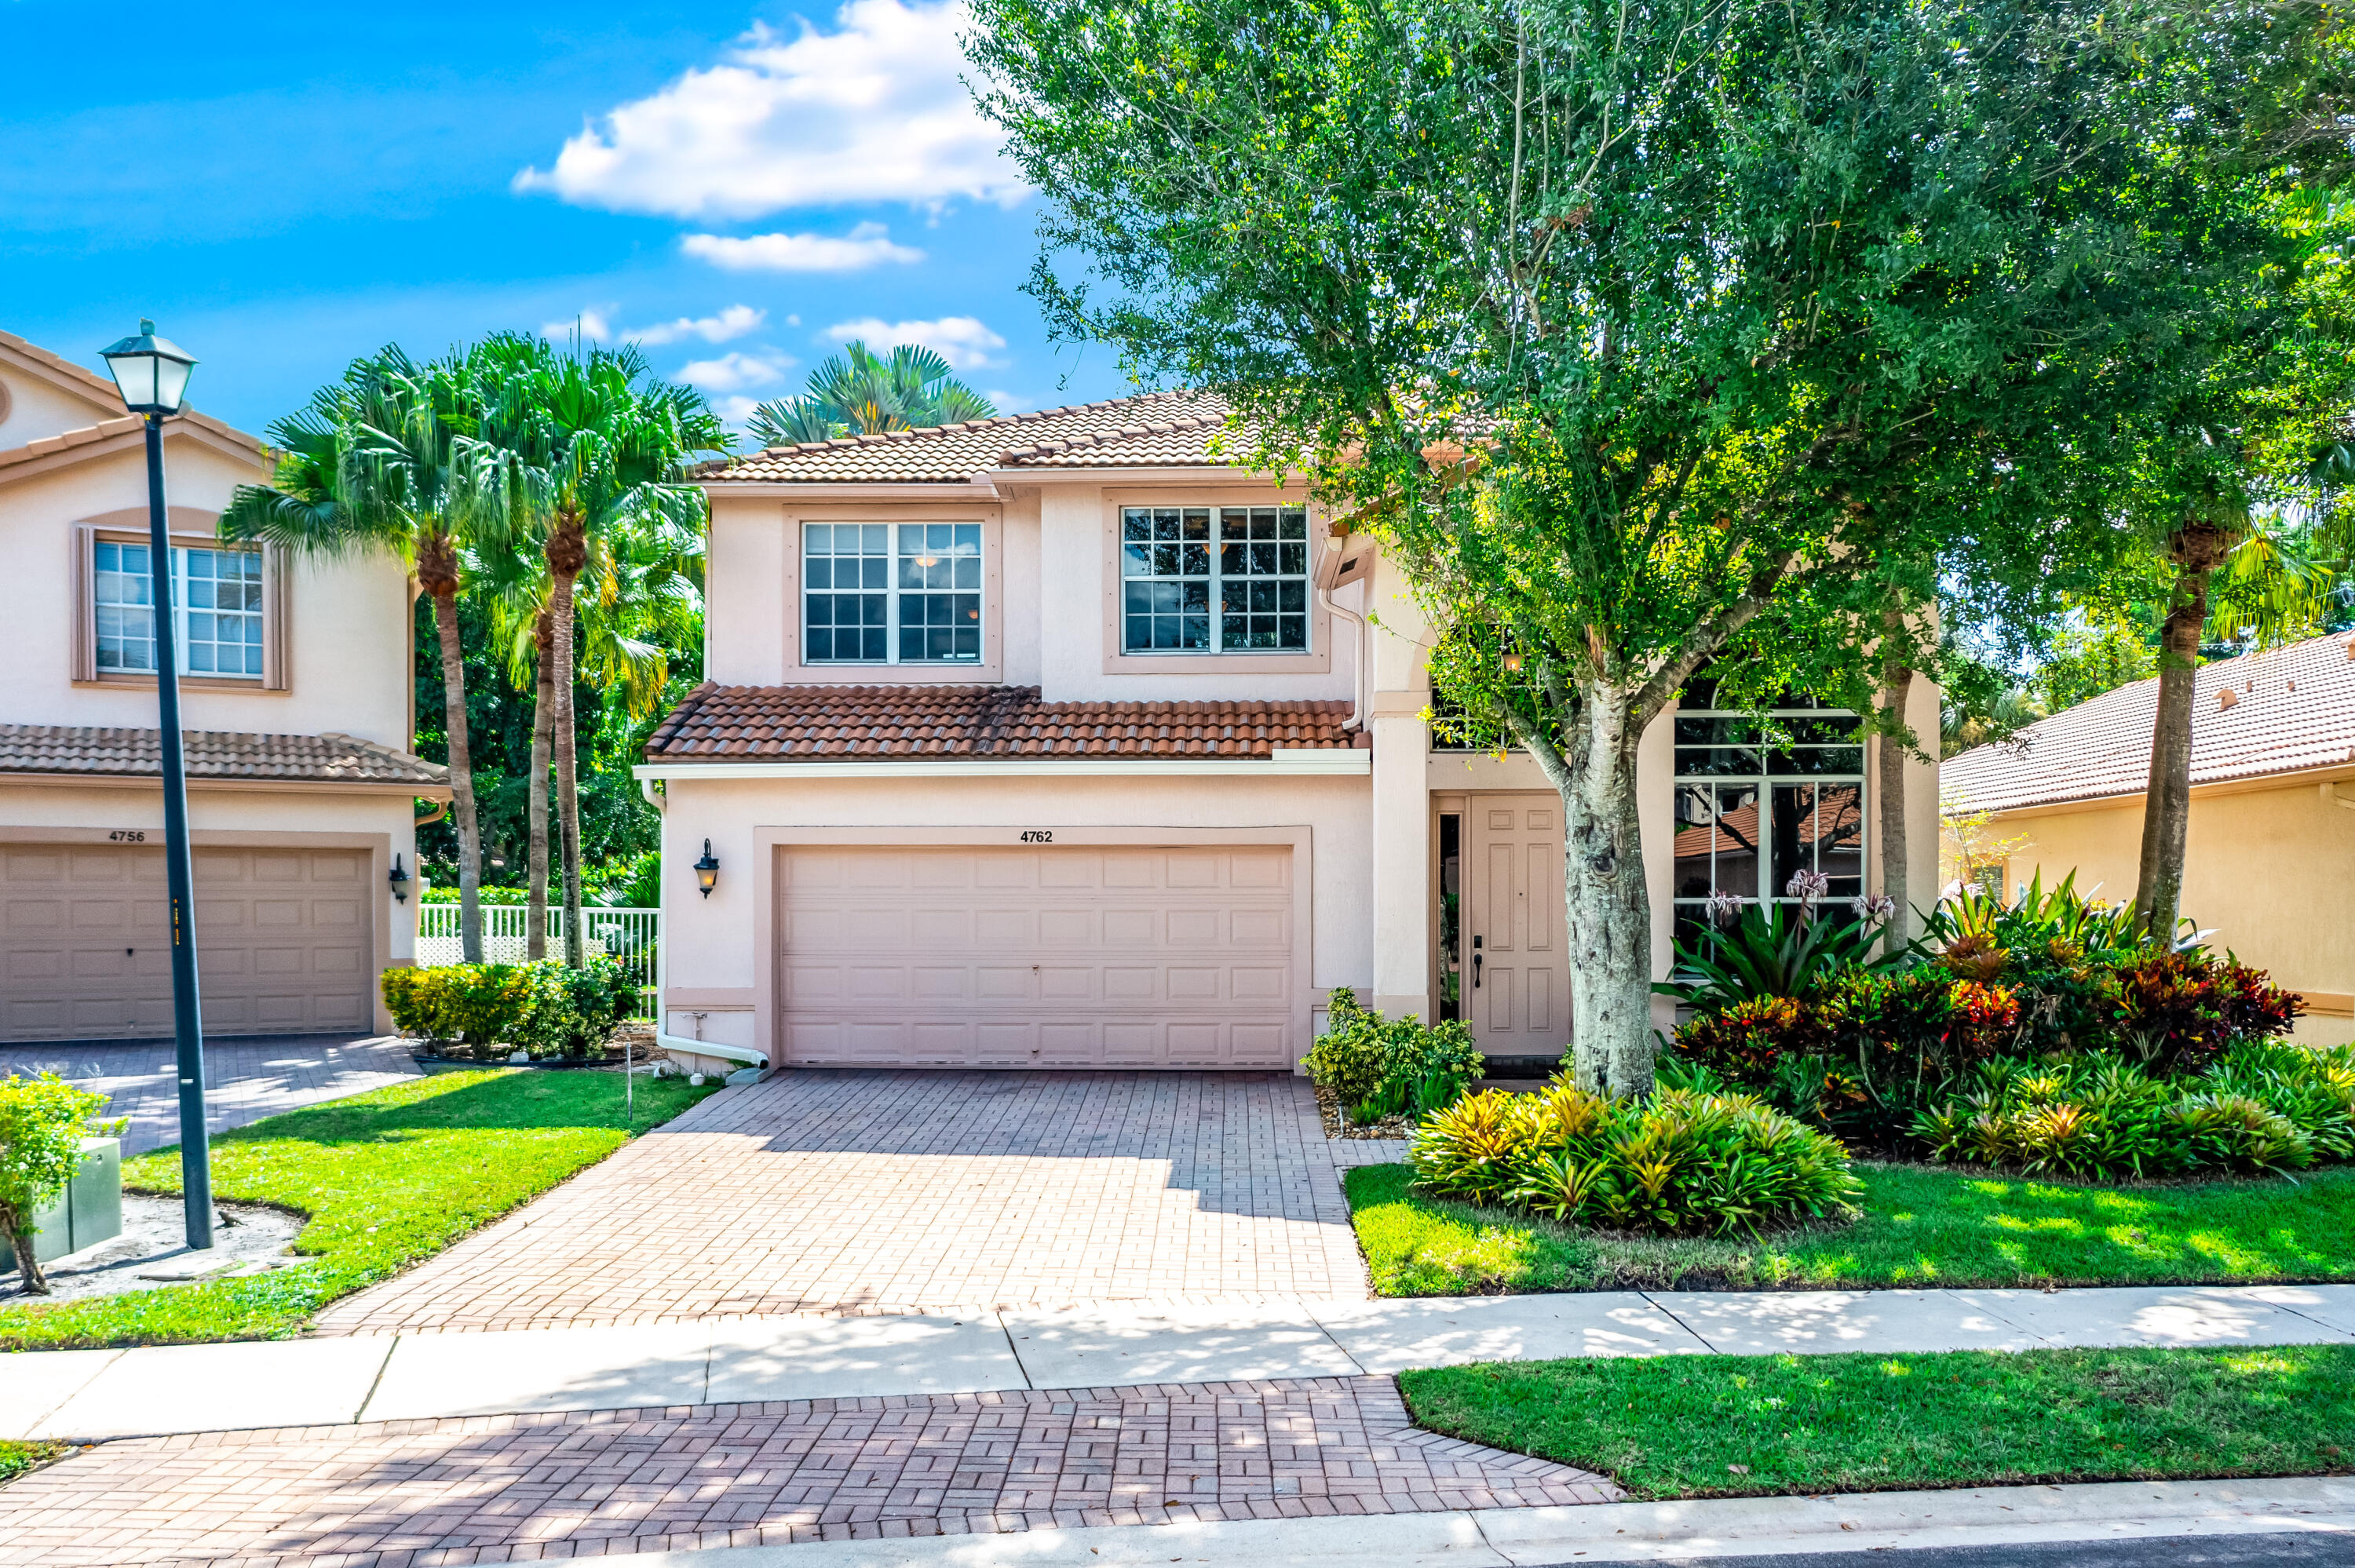 4762 S Classical Boulevard  For Sale 10753066, FL